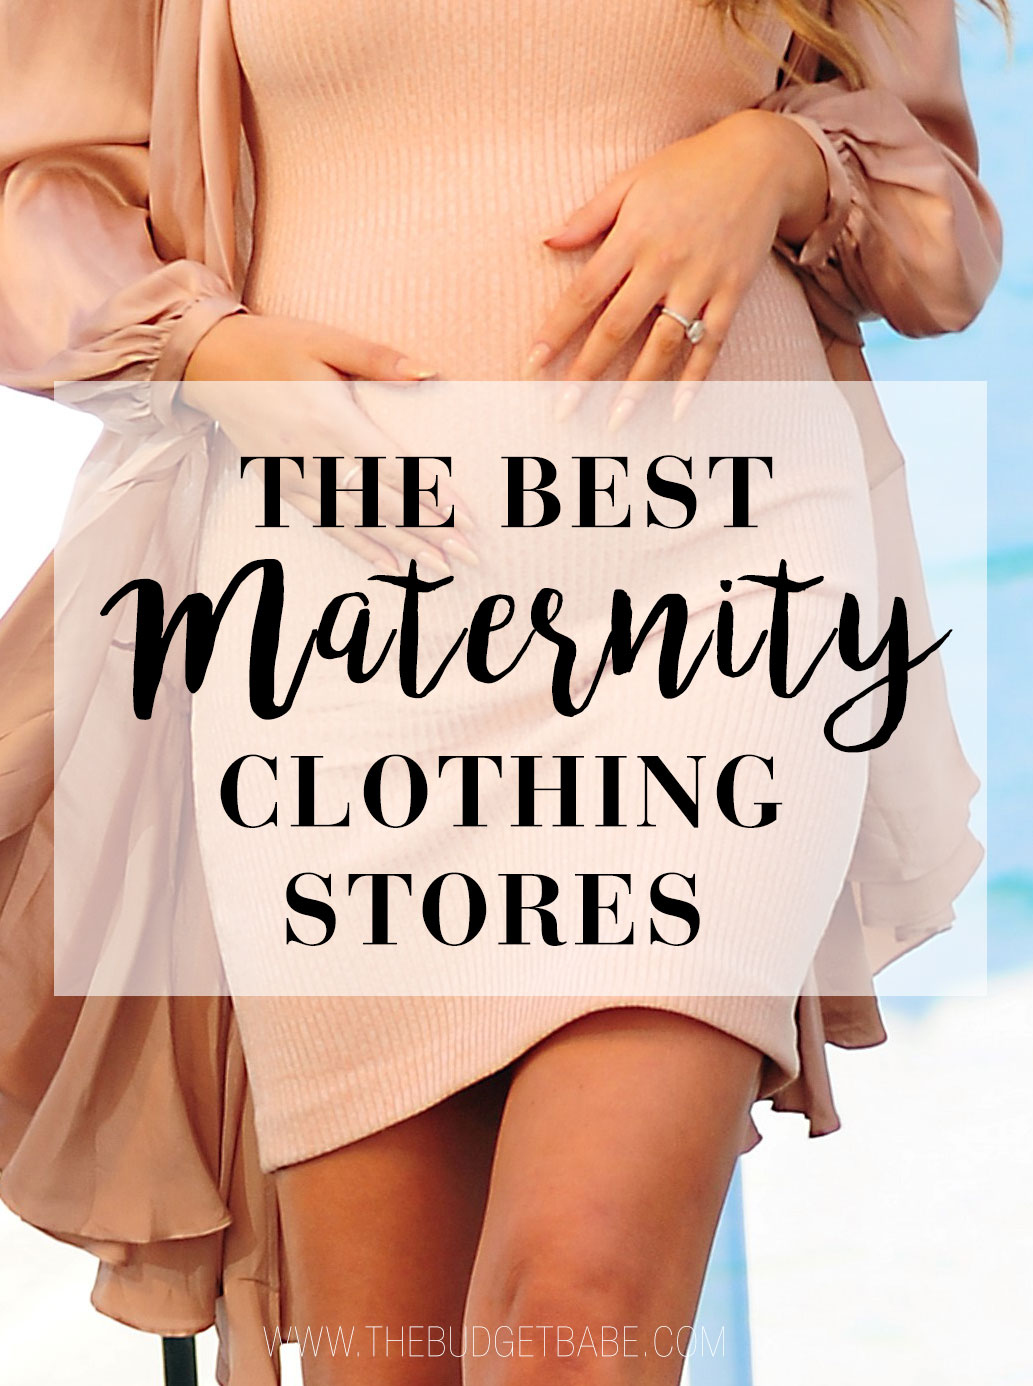 Check out this list of the best maternity clothing stores.